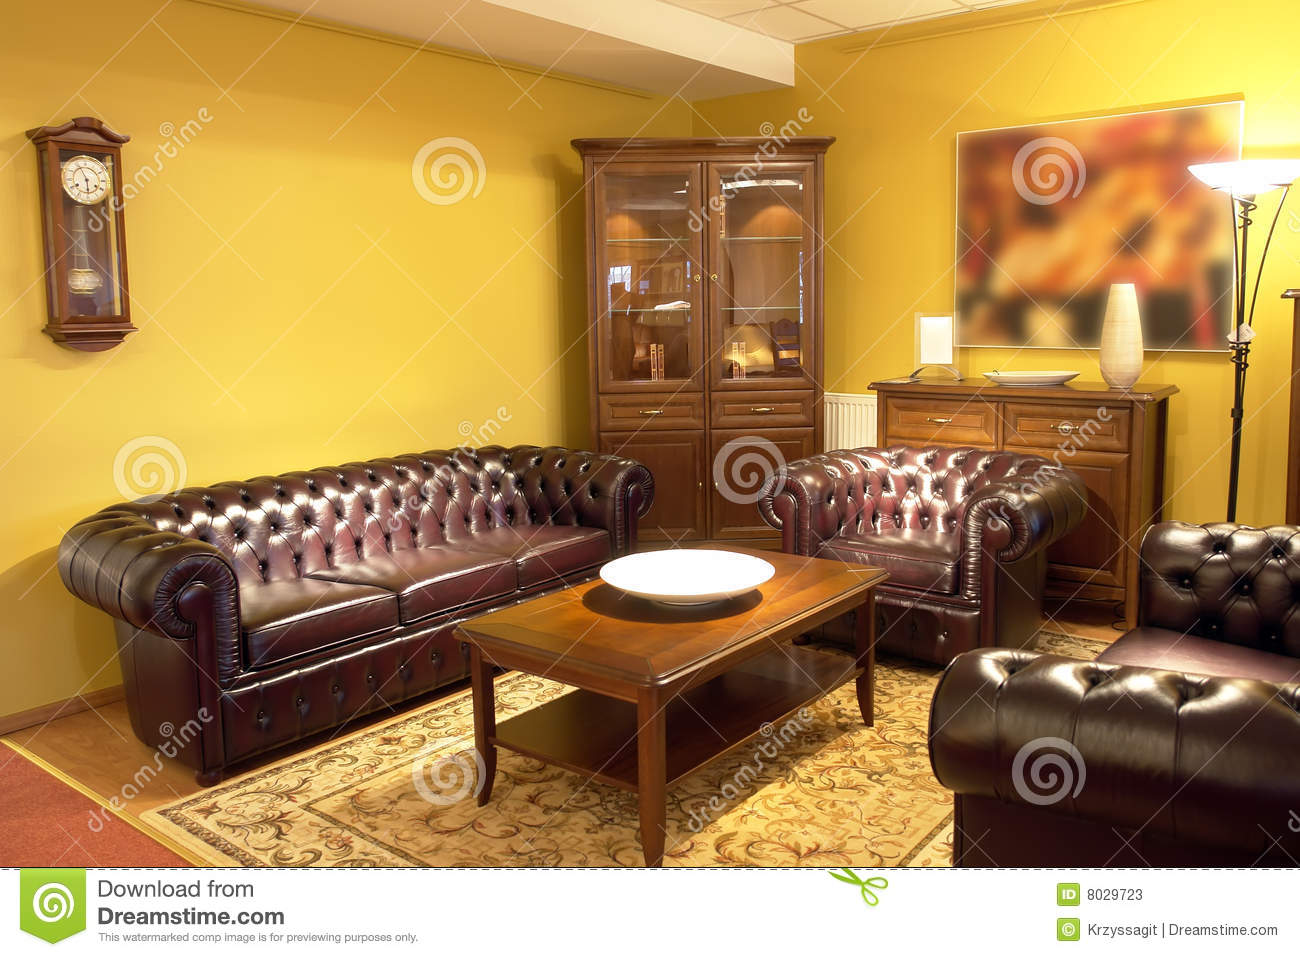 . Formal living room setting stock image  Image of area   8029723